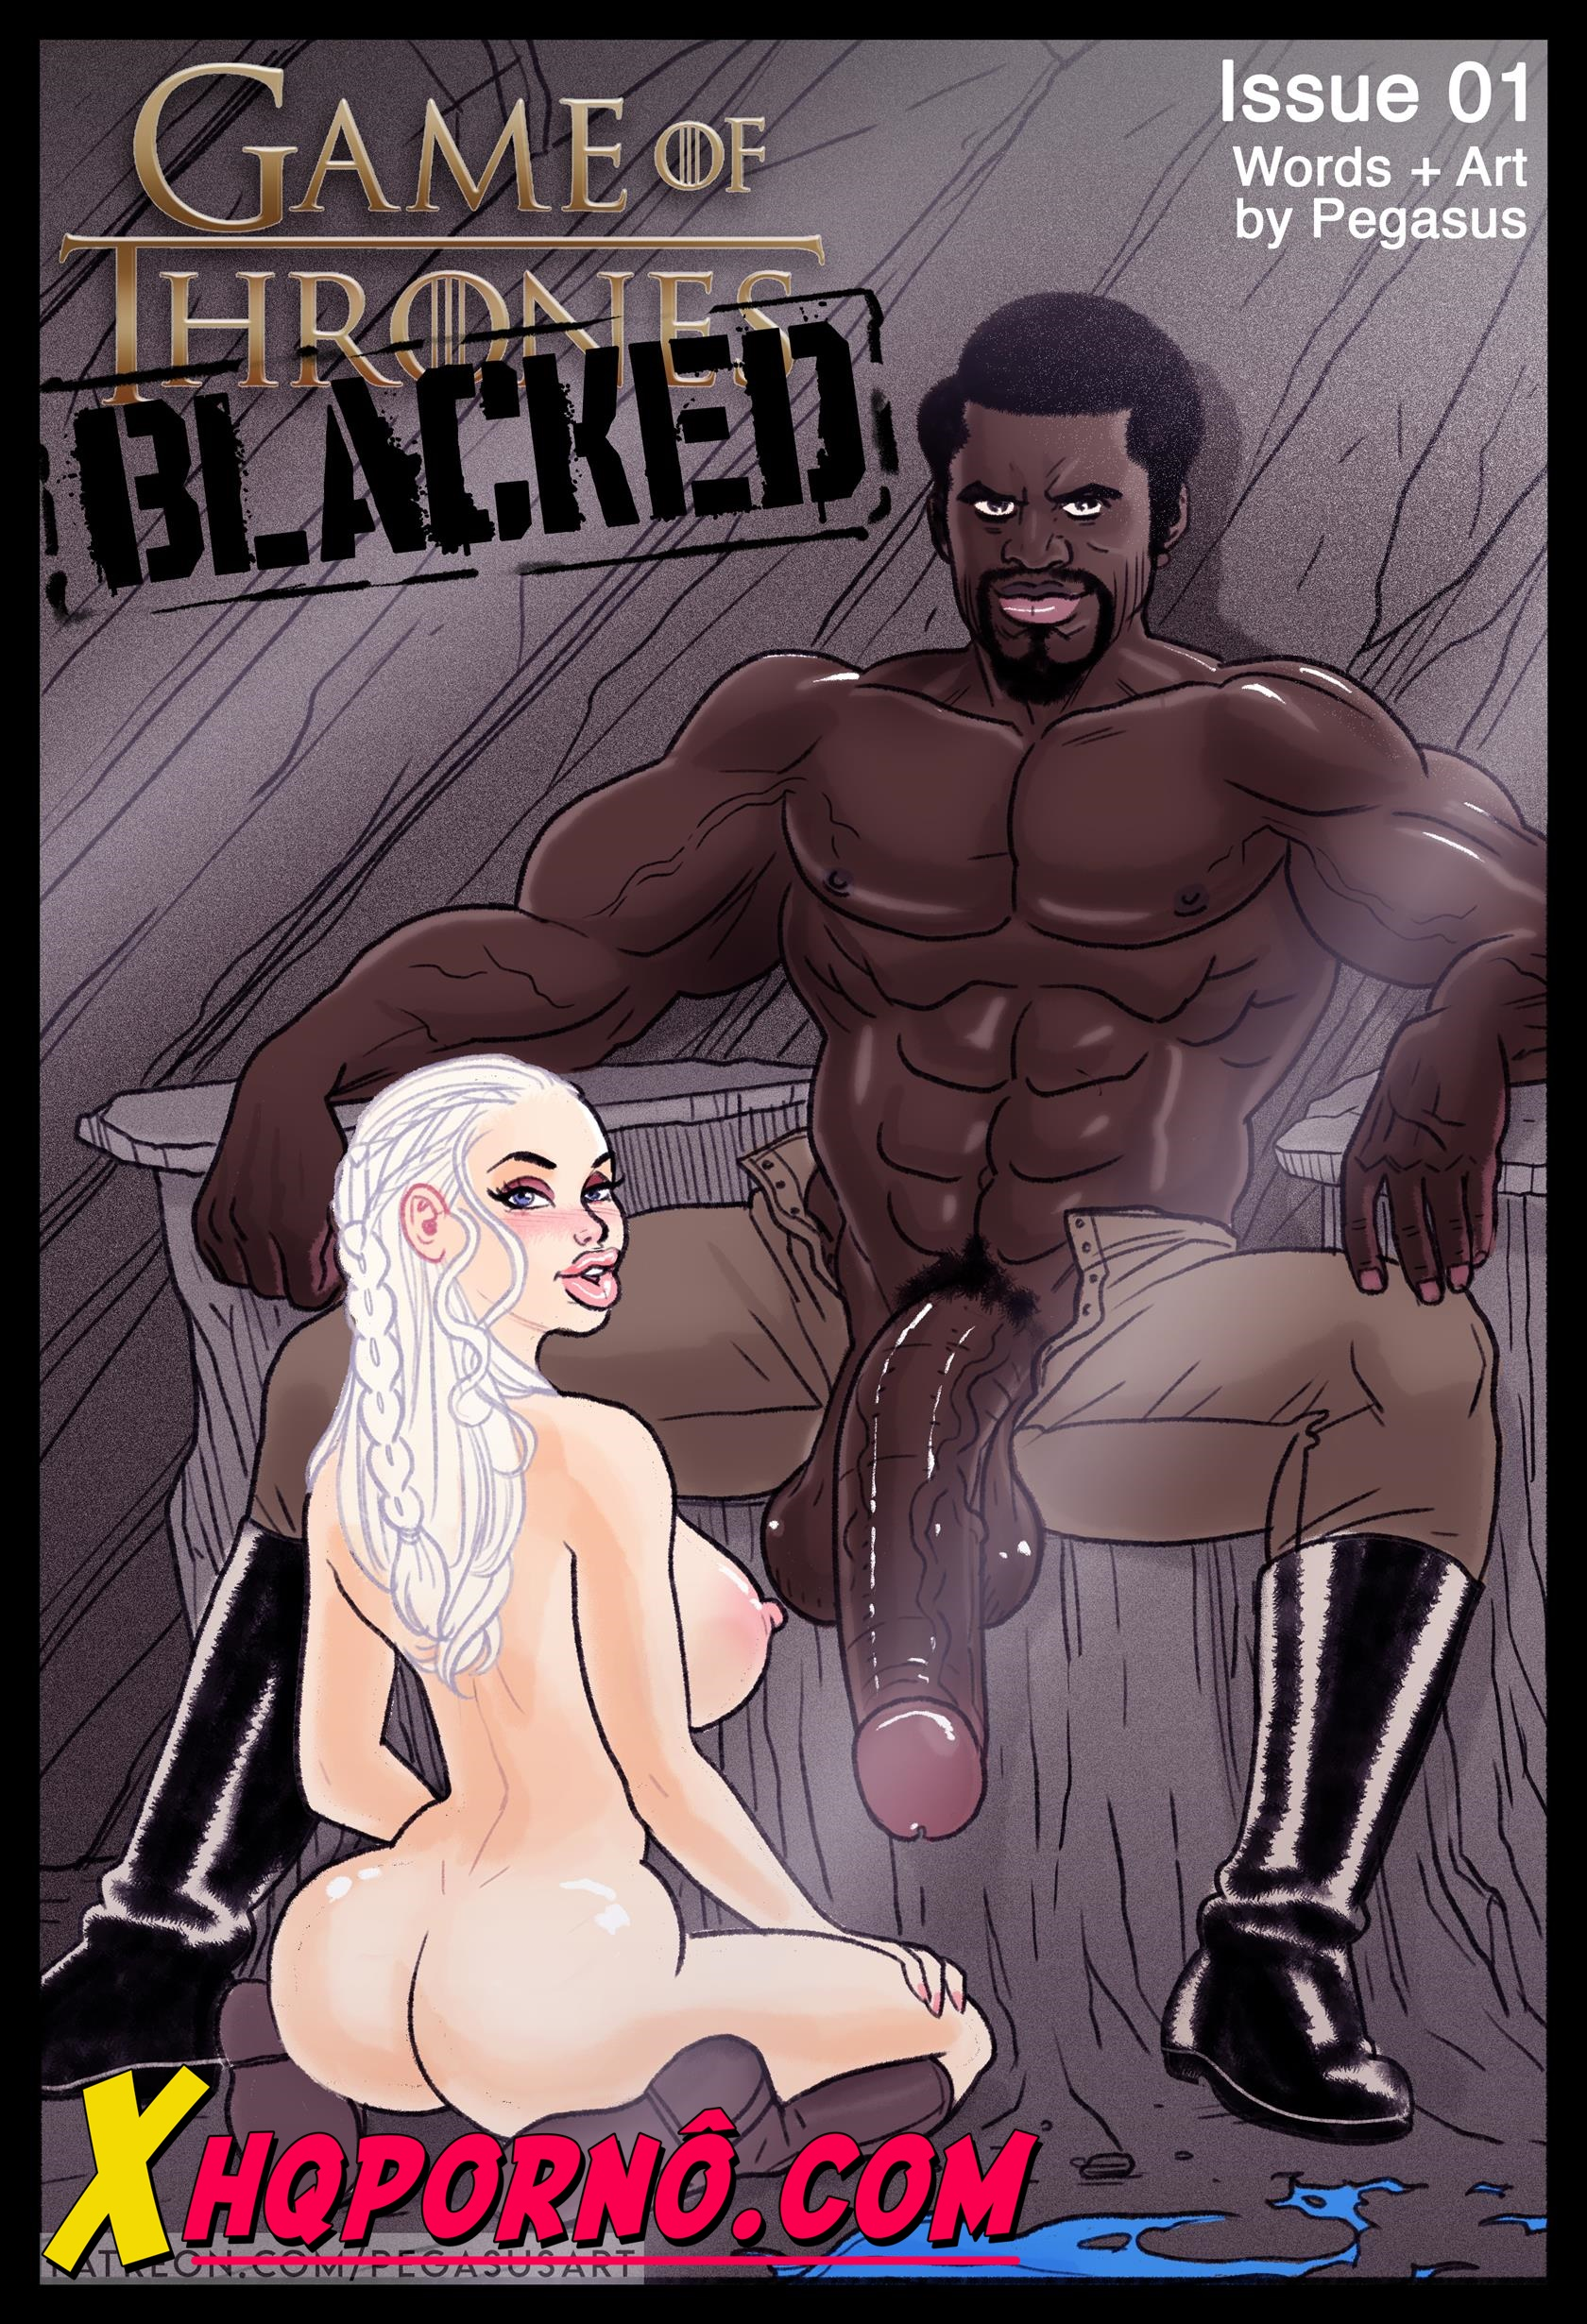 Game of Thrones – Blacked